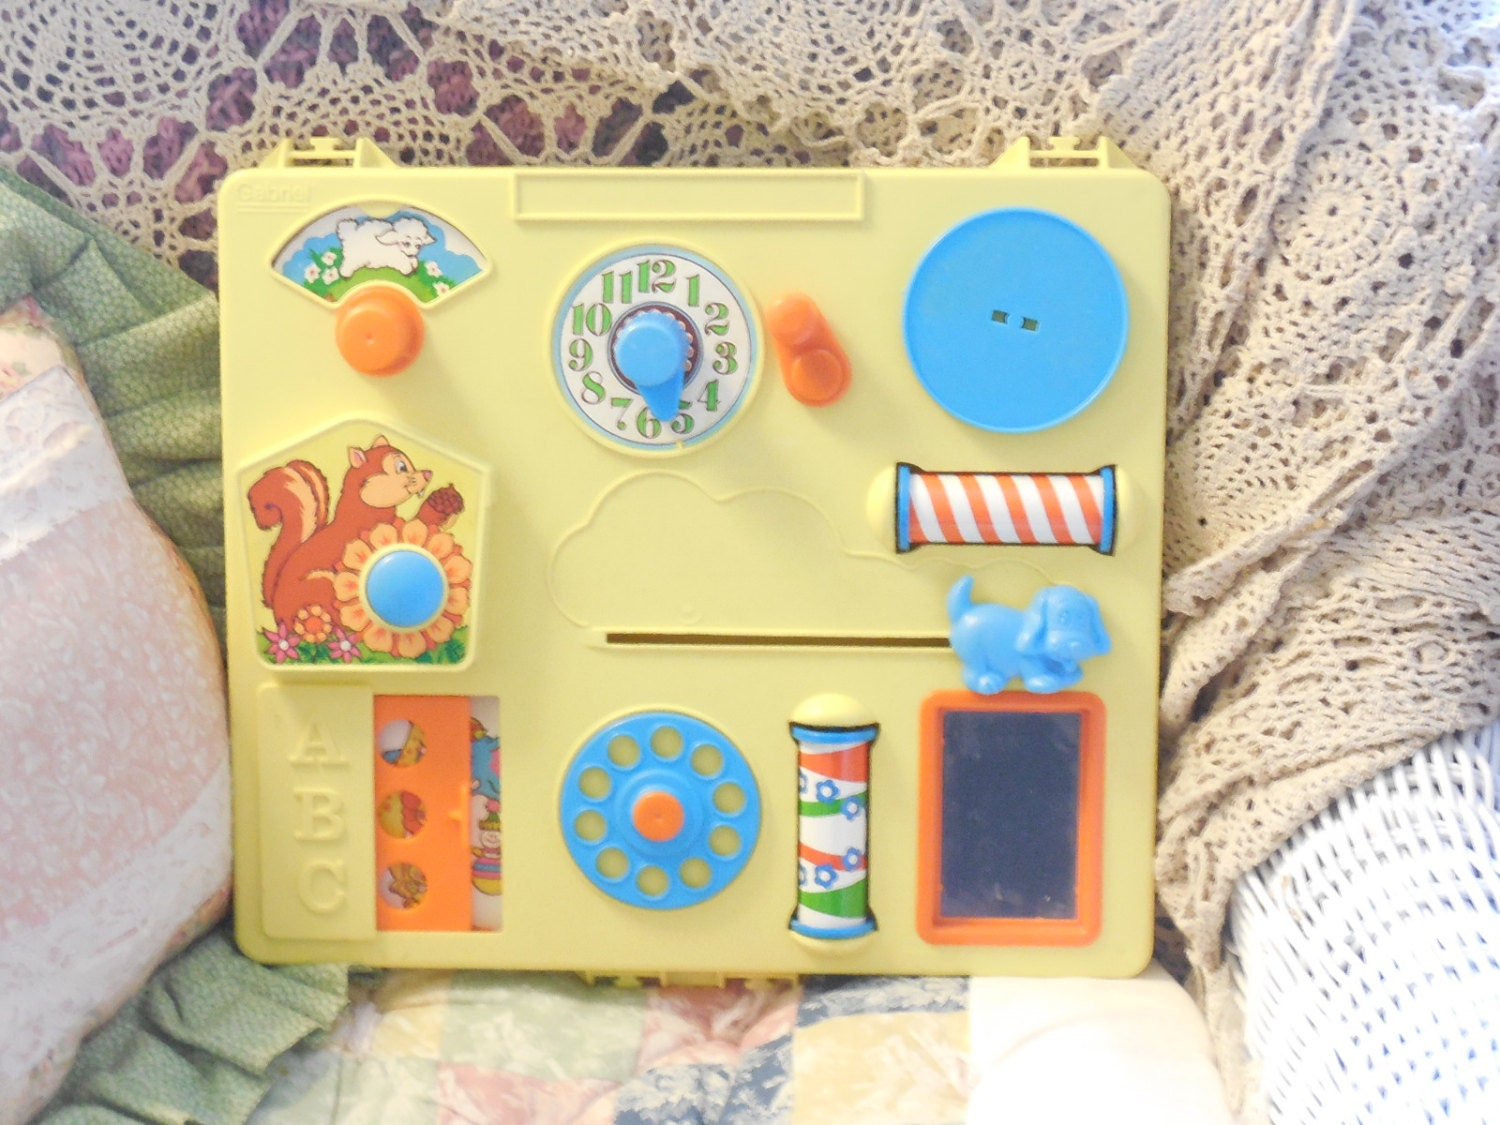 Vintage crib for sale - Vintage Baby Toy Vintage Crib Toy Gabriel Busy Box Activity Center Crib Toy 1975 S Not Included In Coupon Discount Sale S